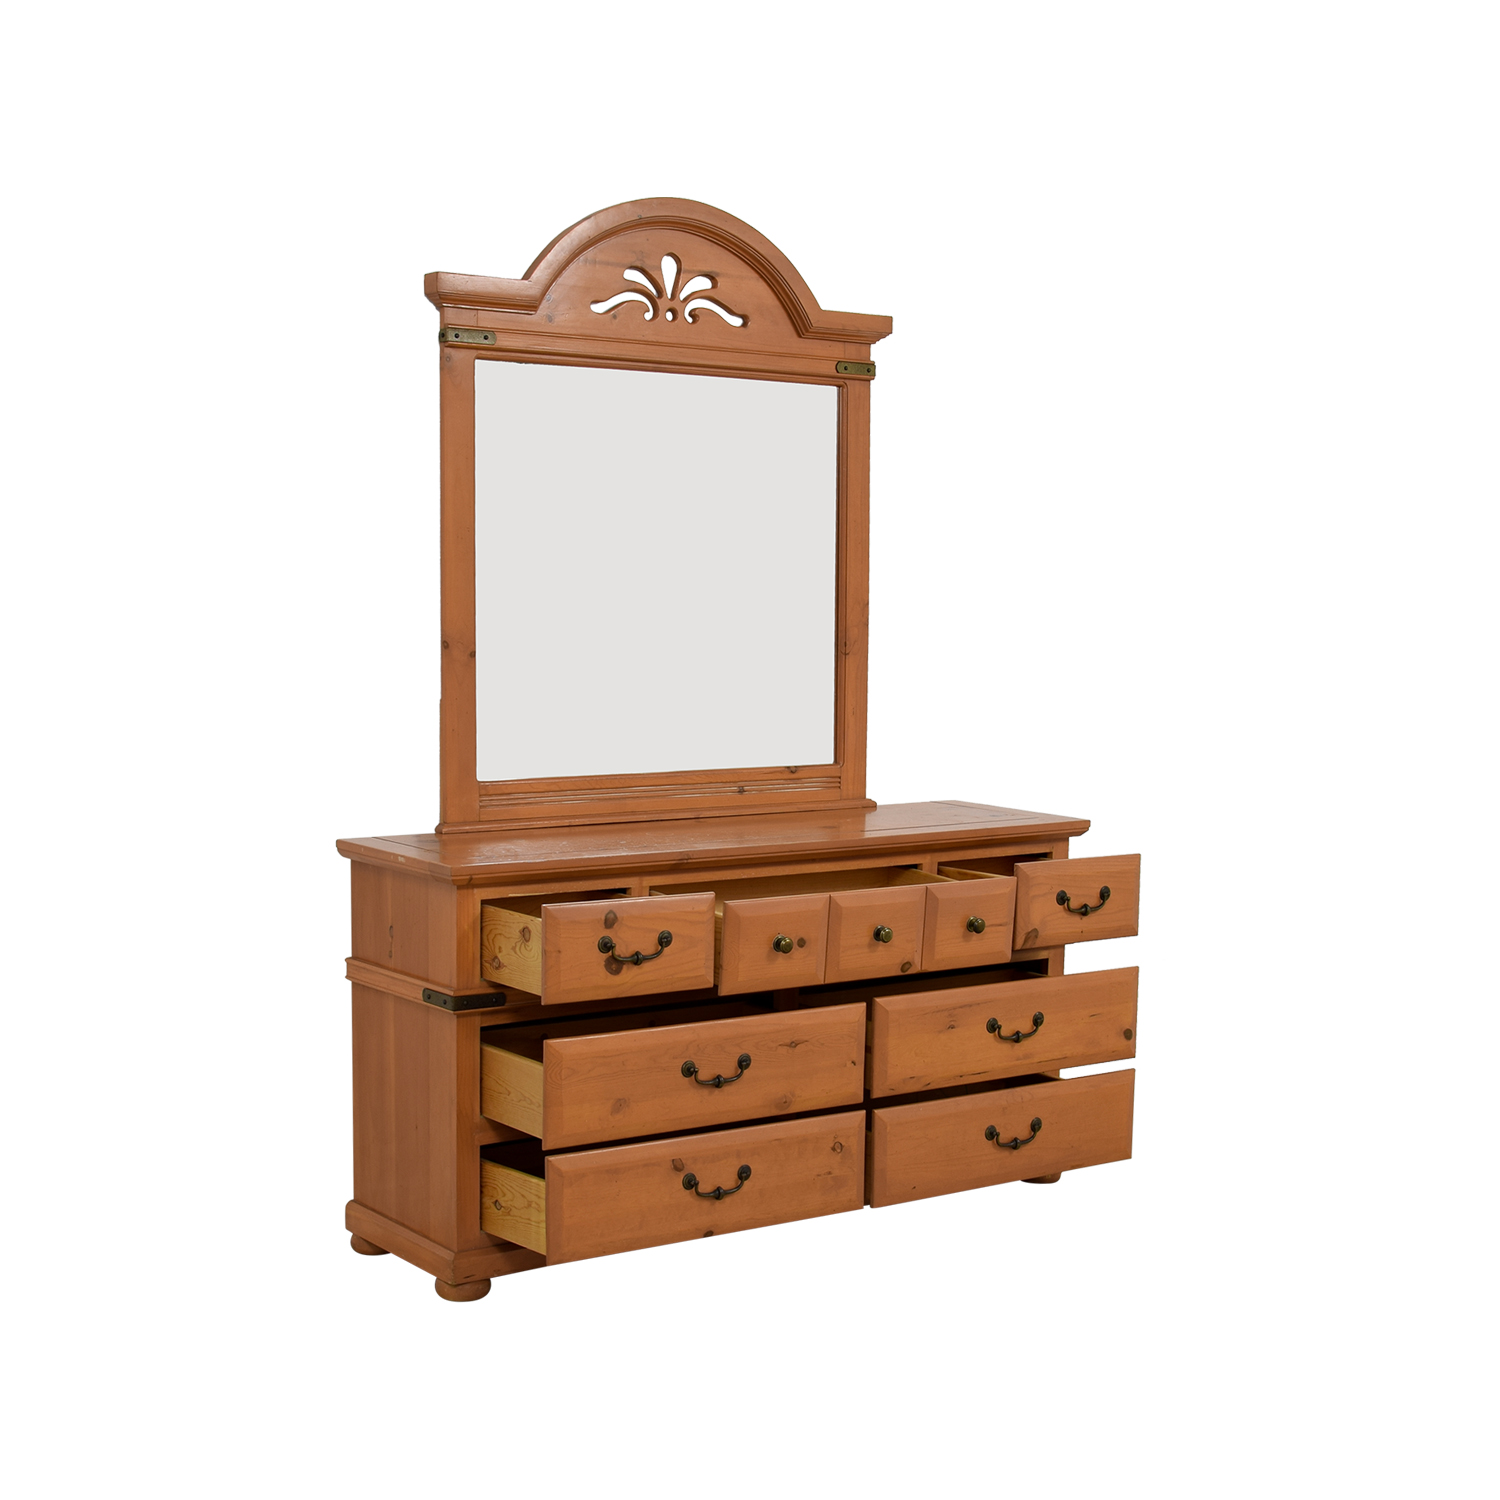 Off wood seven drawer dresser with cutout mirror